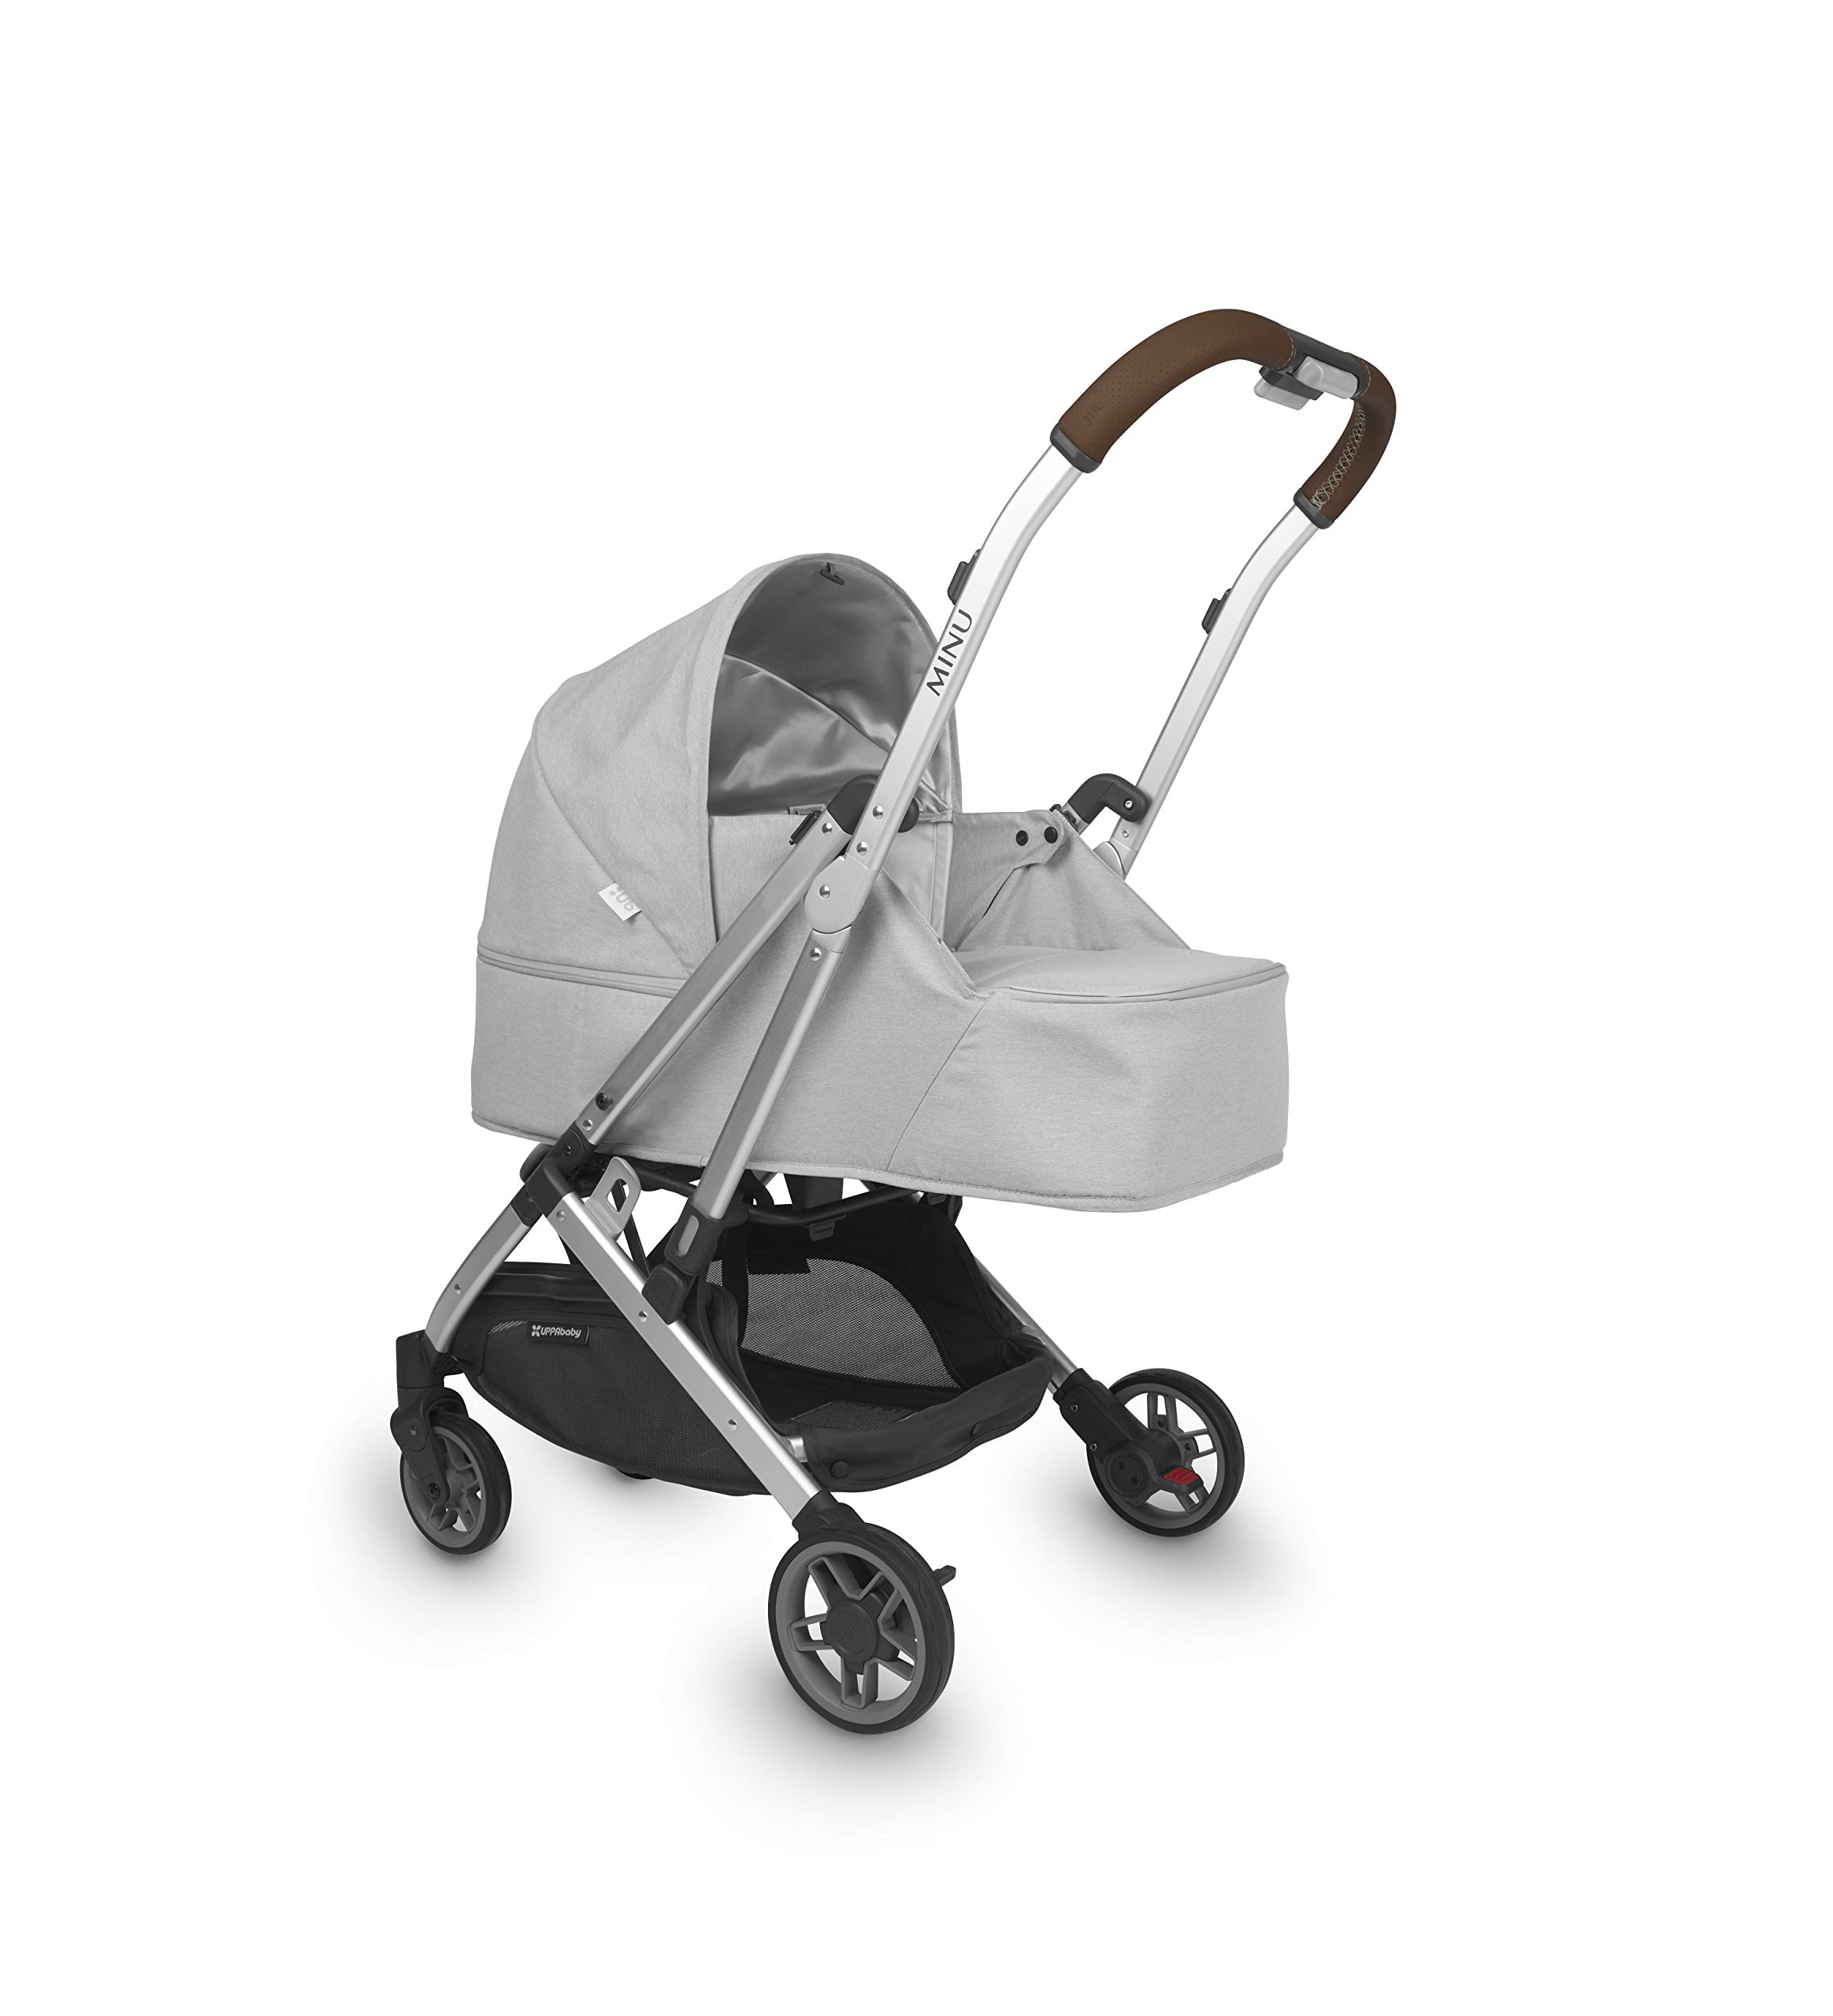 UPPAbaby From Birth Kit - DEVIN (light grey) by UPPAbaby (Image #1)